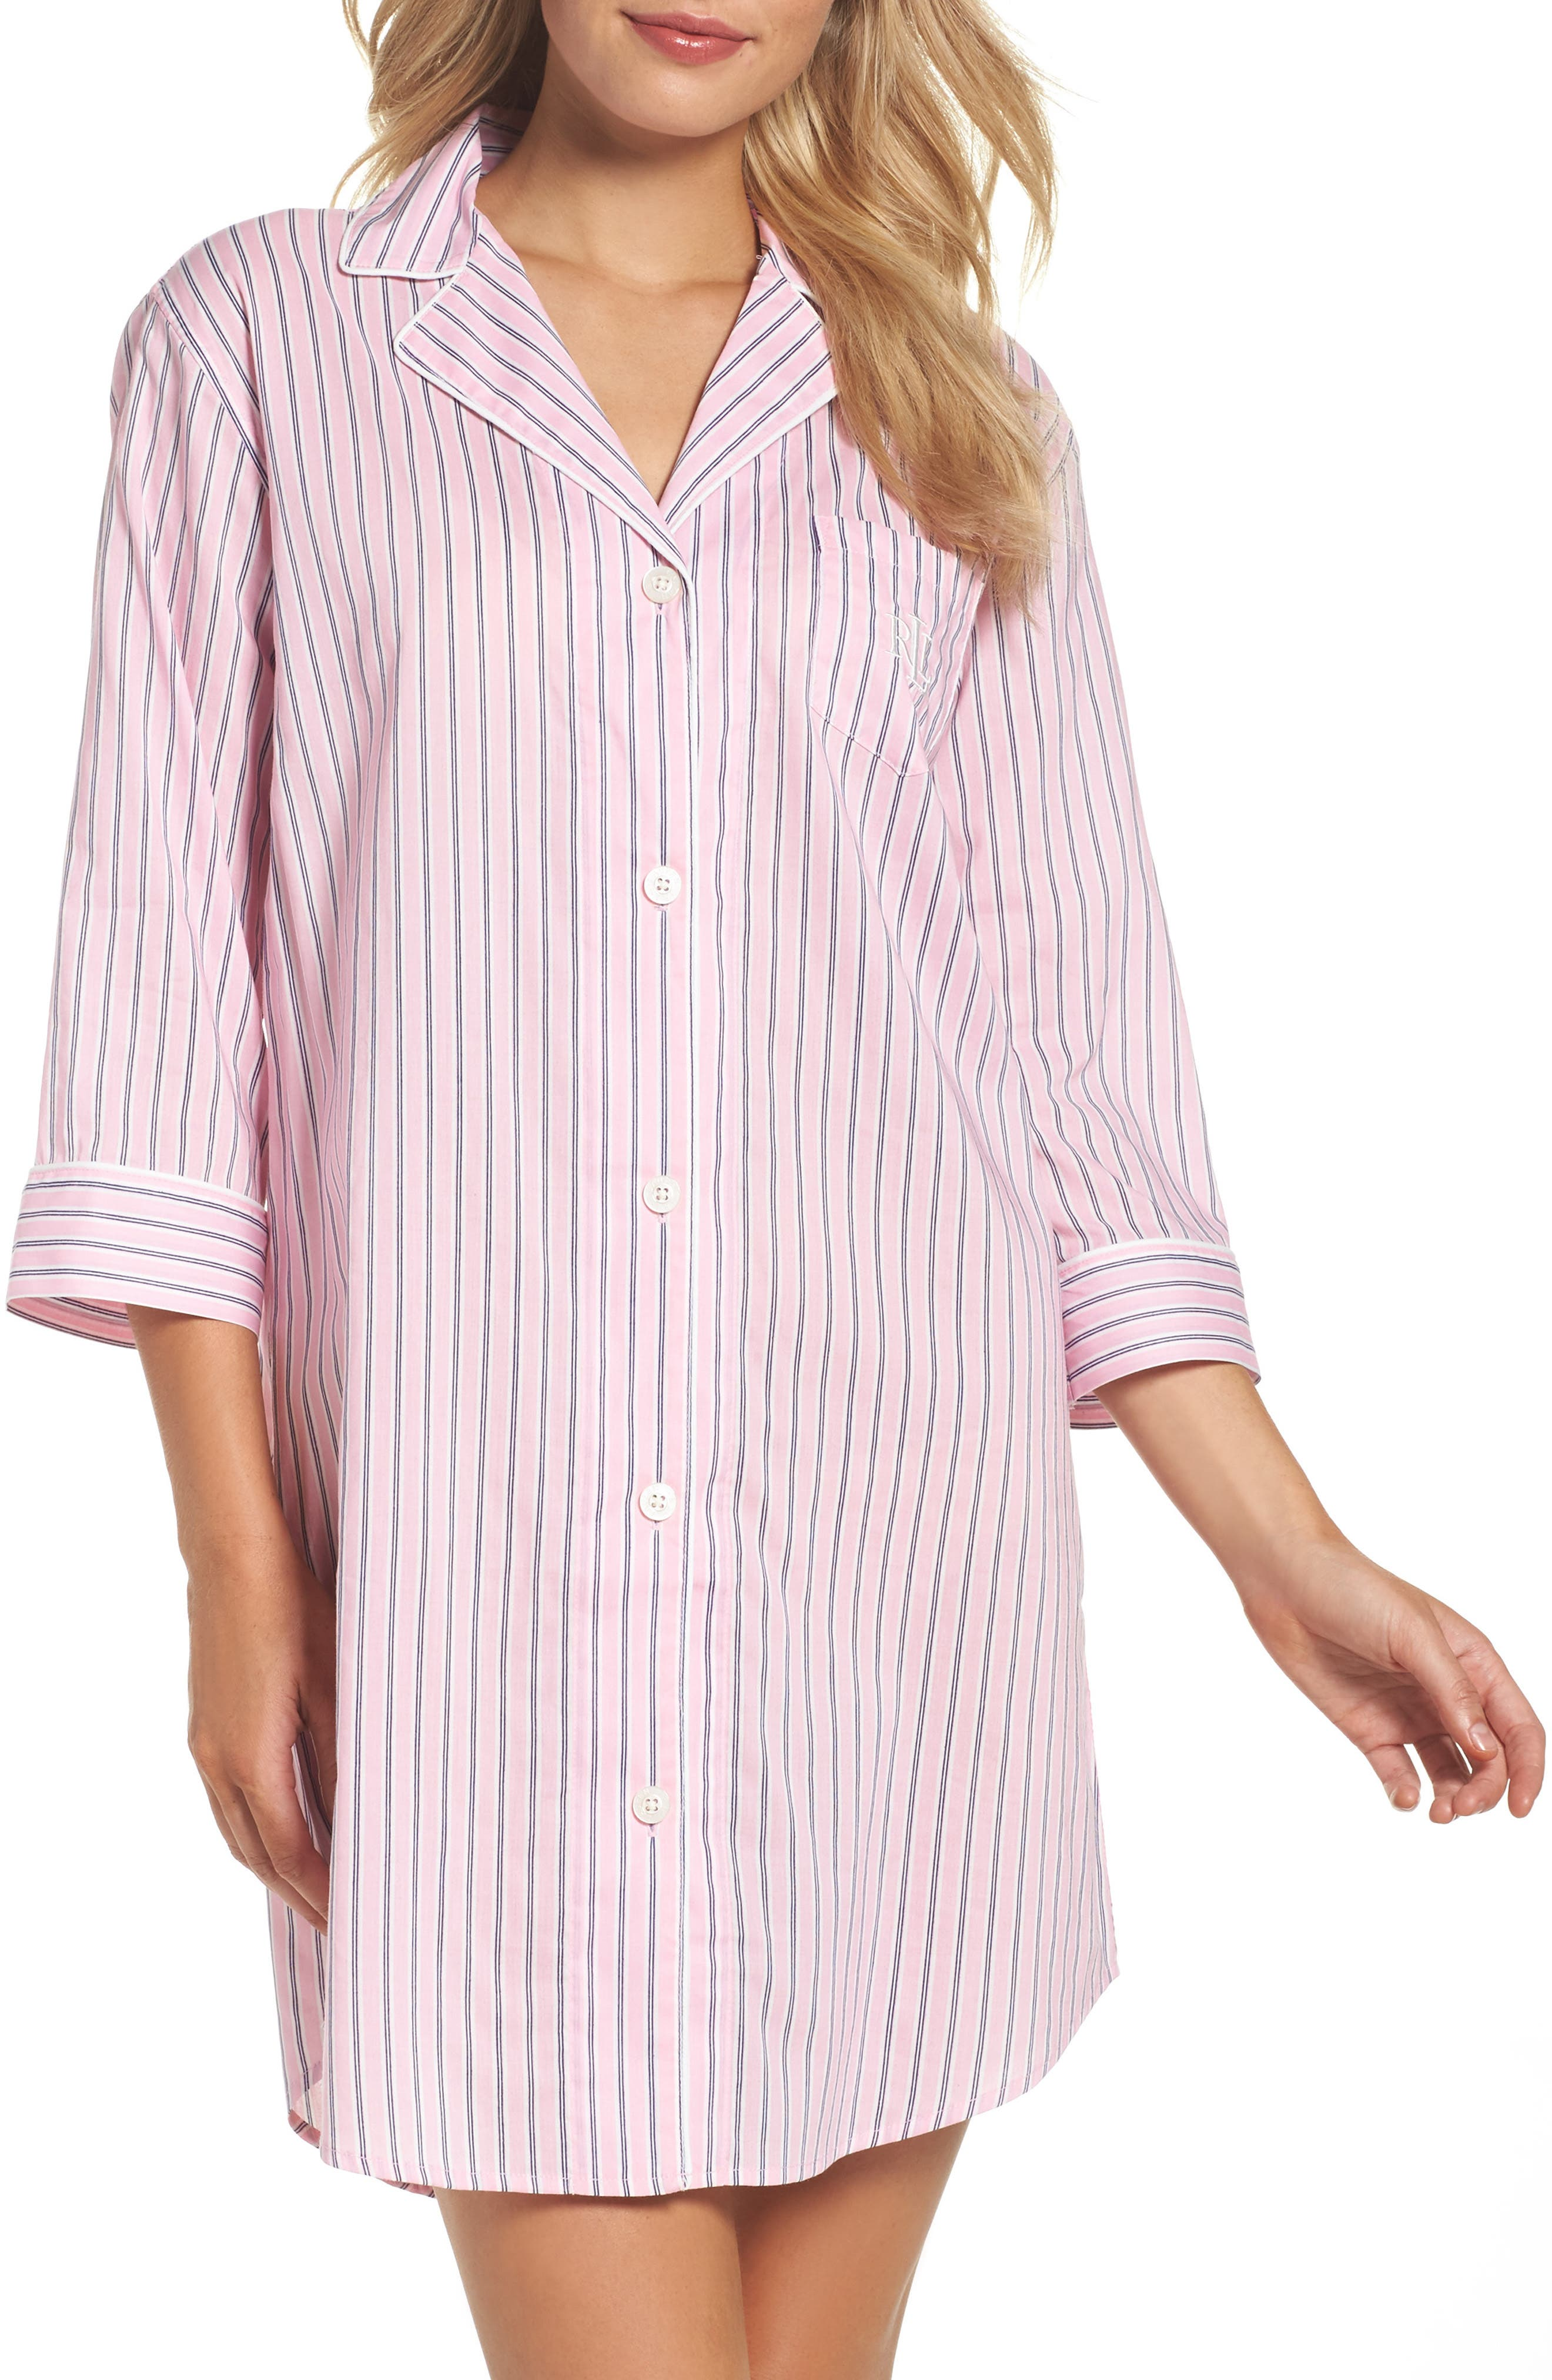 Main Image - Lauren Ralph Lauren Sleep Shirt